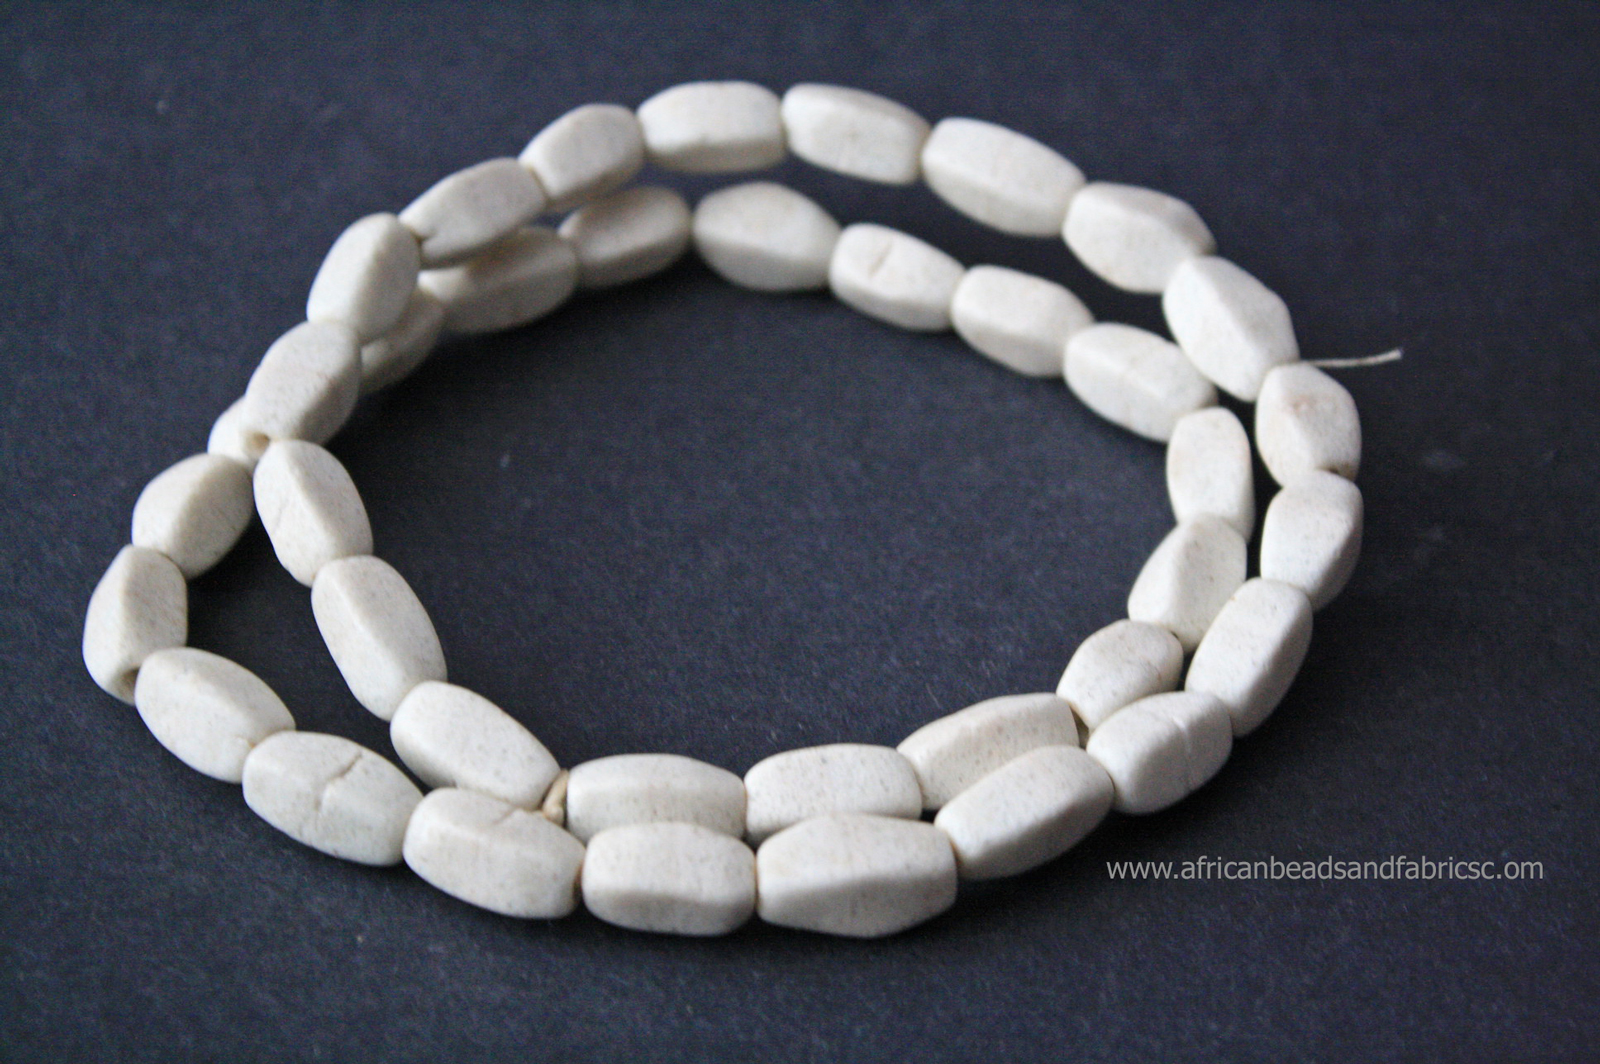 African-Beads-Ghana-Krobo-Recyled-glass-multifaceted-white-watermarked